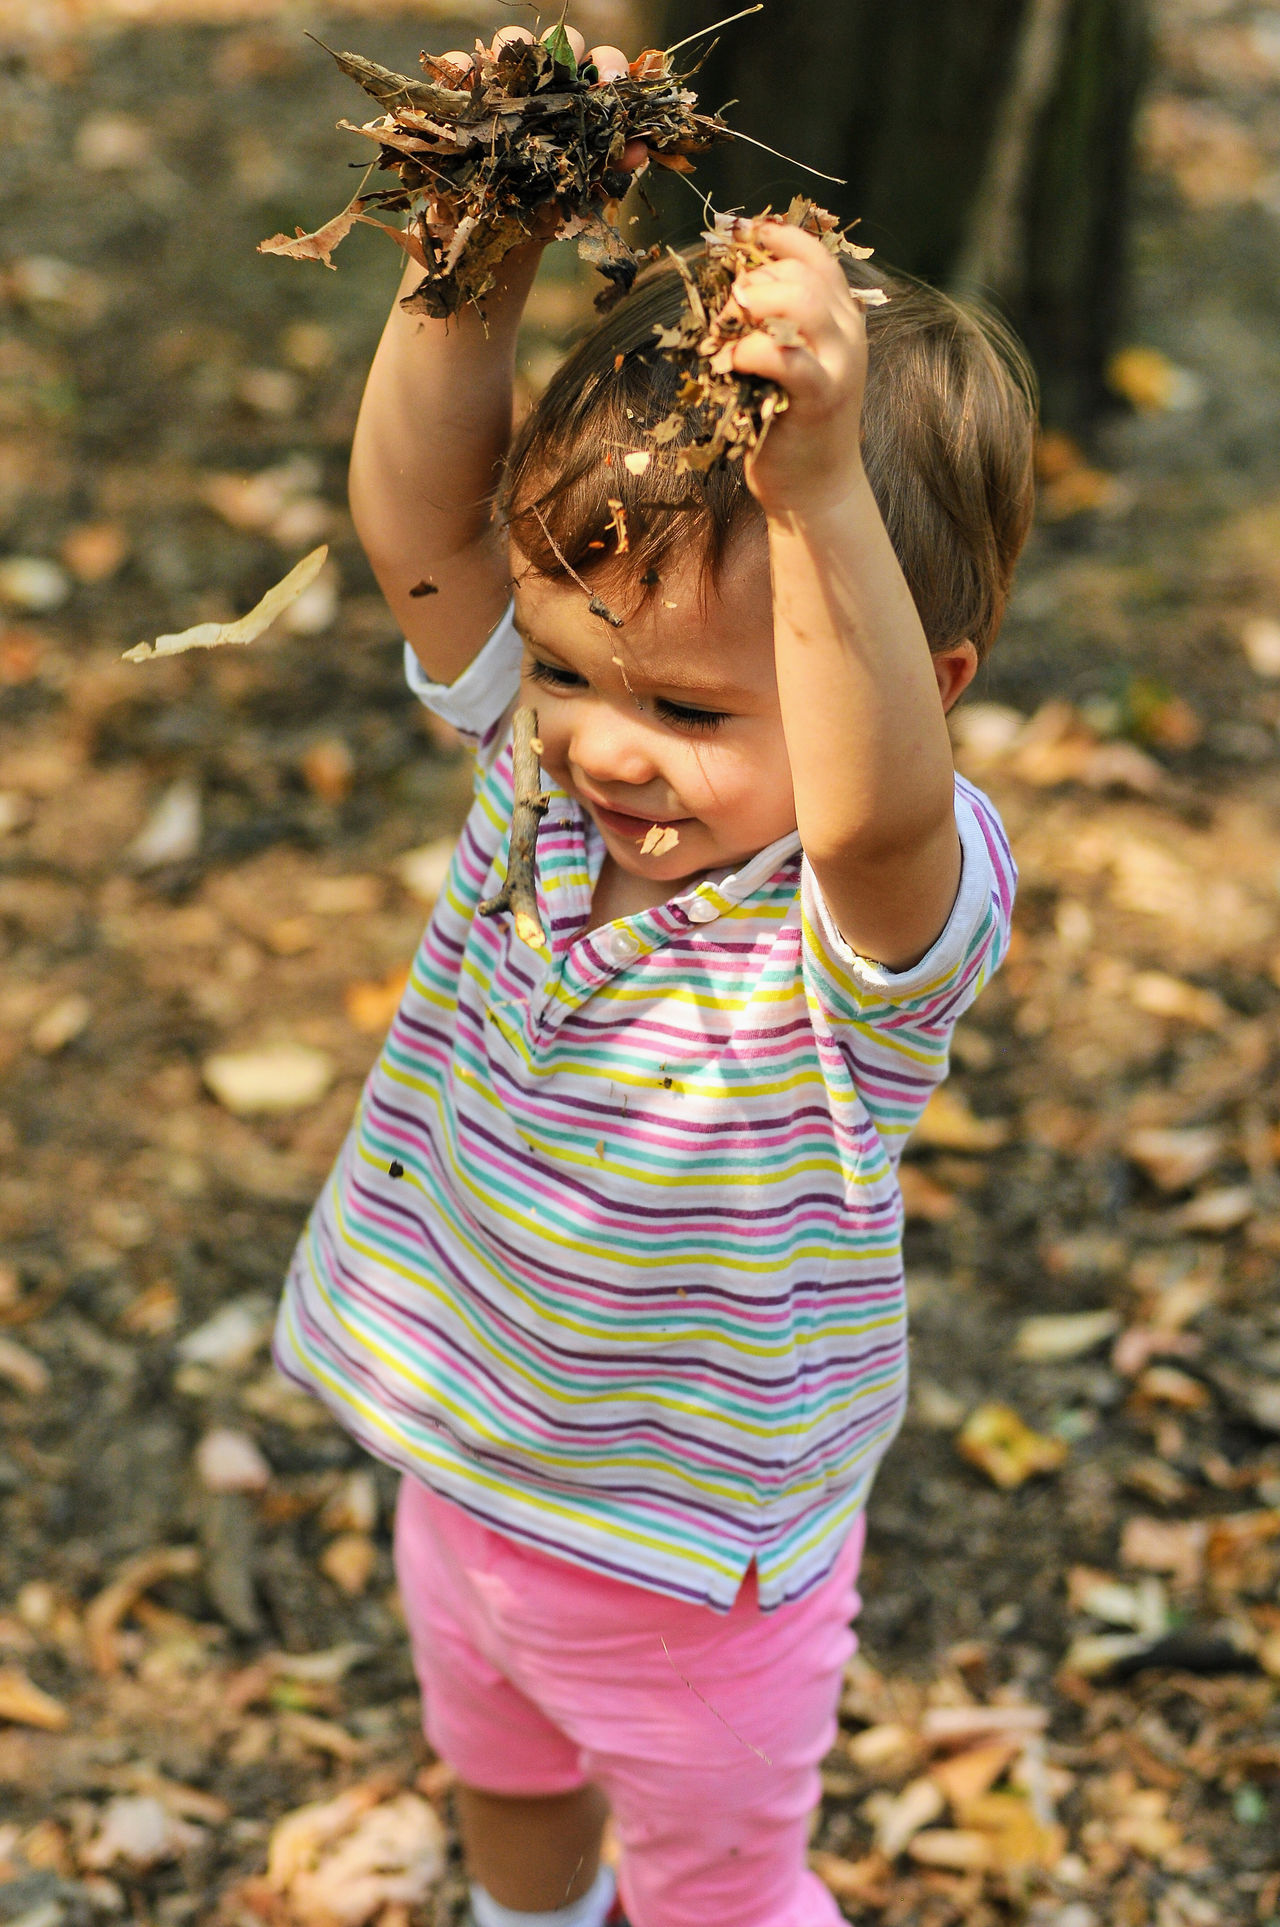 A baby girl is playing with leafs in the nature. Autumn Cheerful Childhood Childhood Memories Dust Elementary Age Enjoying The Nature Enjoyments Girls Golden Leafs Growing Up Hands Up Hands Up In The Air Joyful Moments Nature Playing With Nature Pleasure Pleasure Time Pleasures Of Life Throwing Leafs